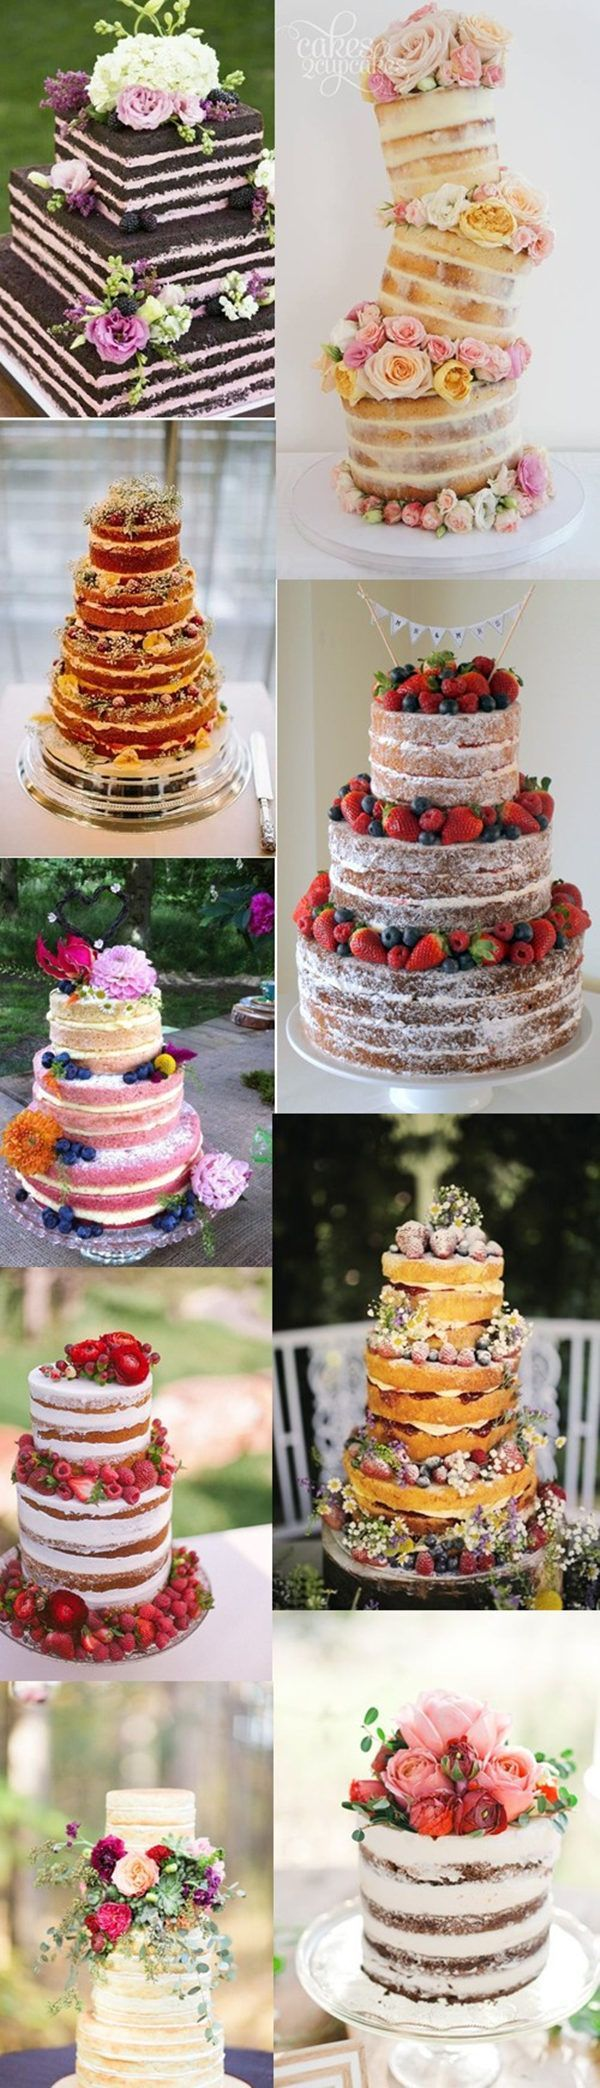 naked wedding cakes that you'll love